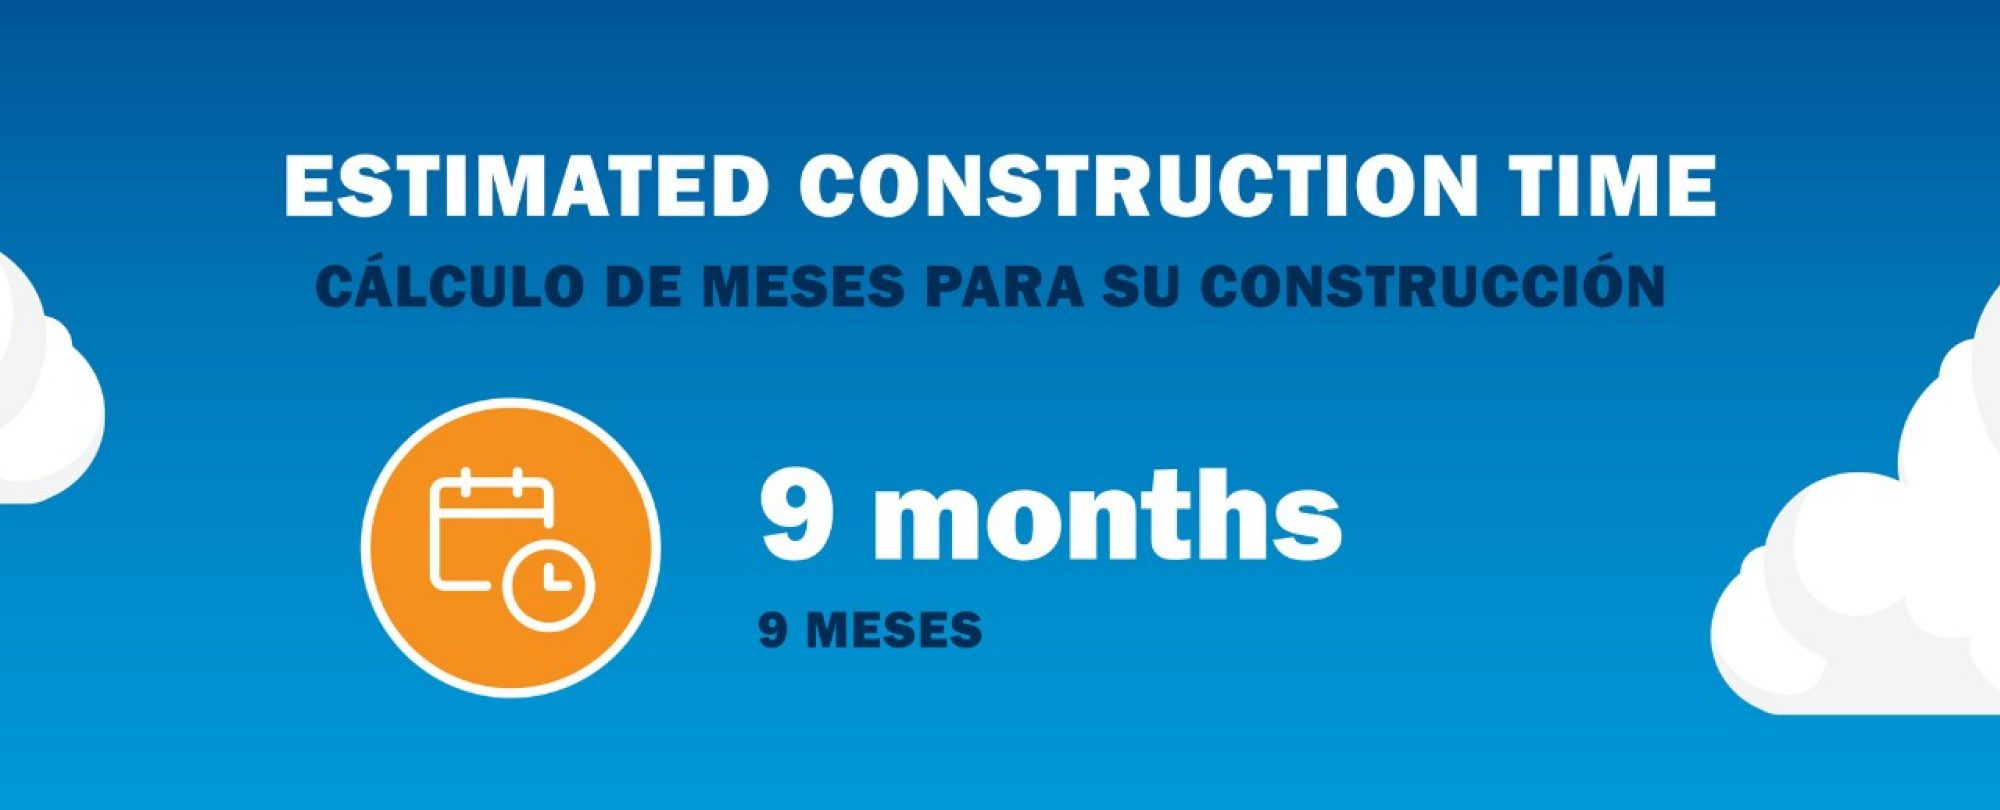 Estimated construction time: 9 months